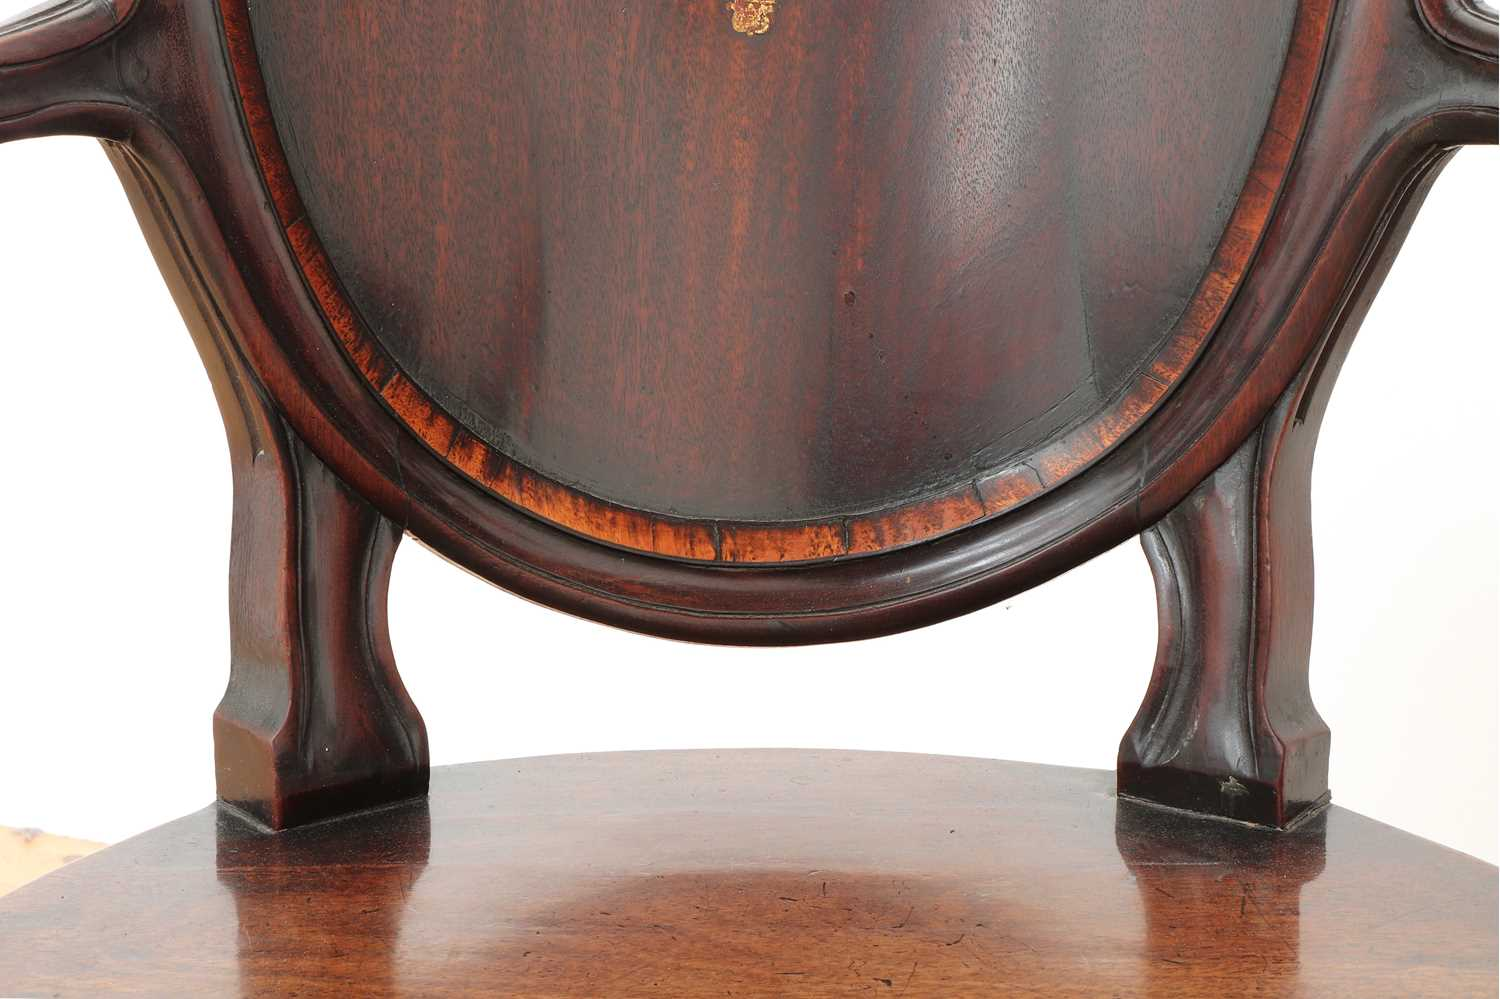 A pair of mahogany hall chairs, - Image 15 of 119